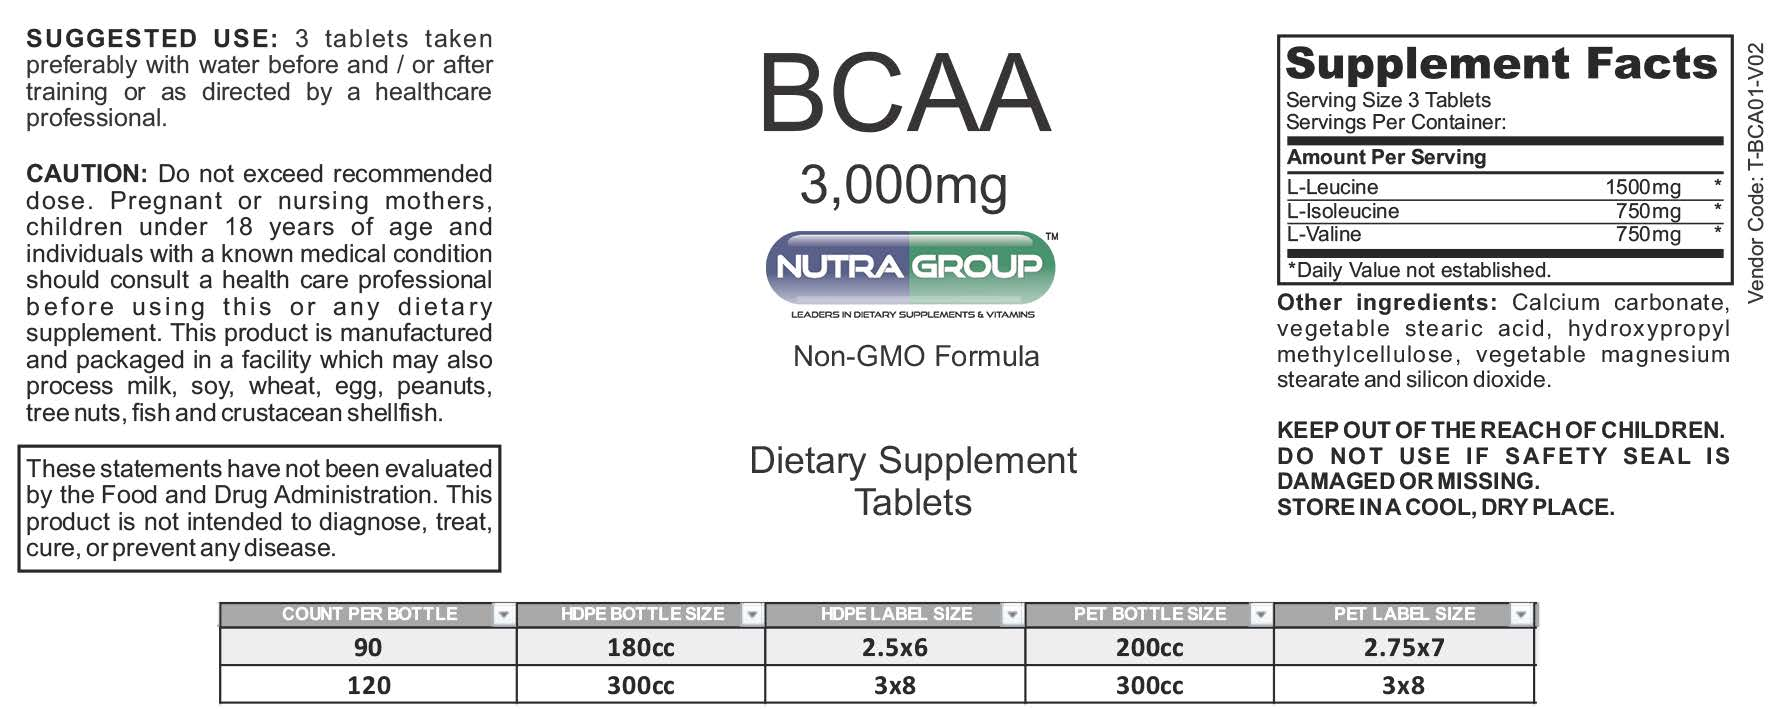 Private Label BCAA Supplement